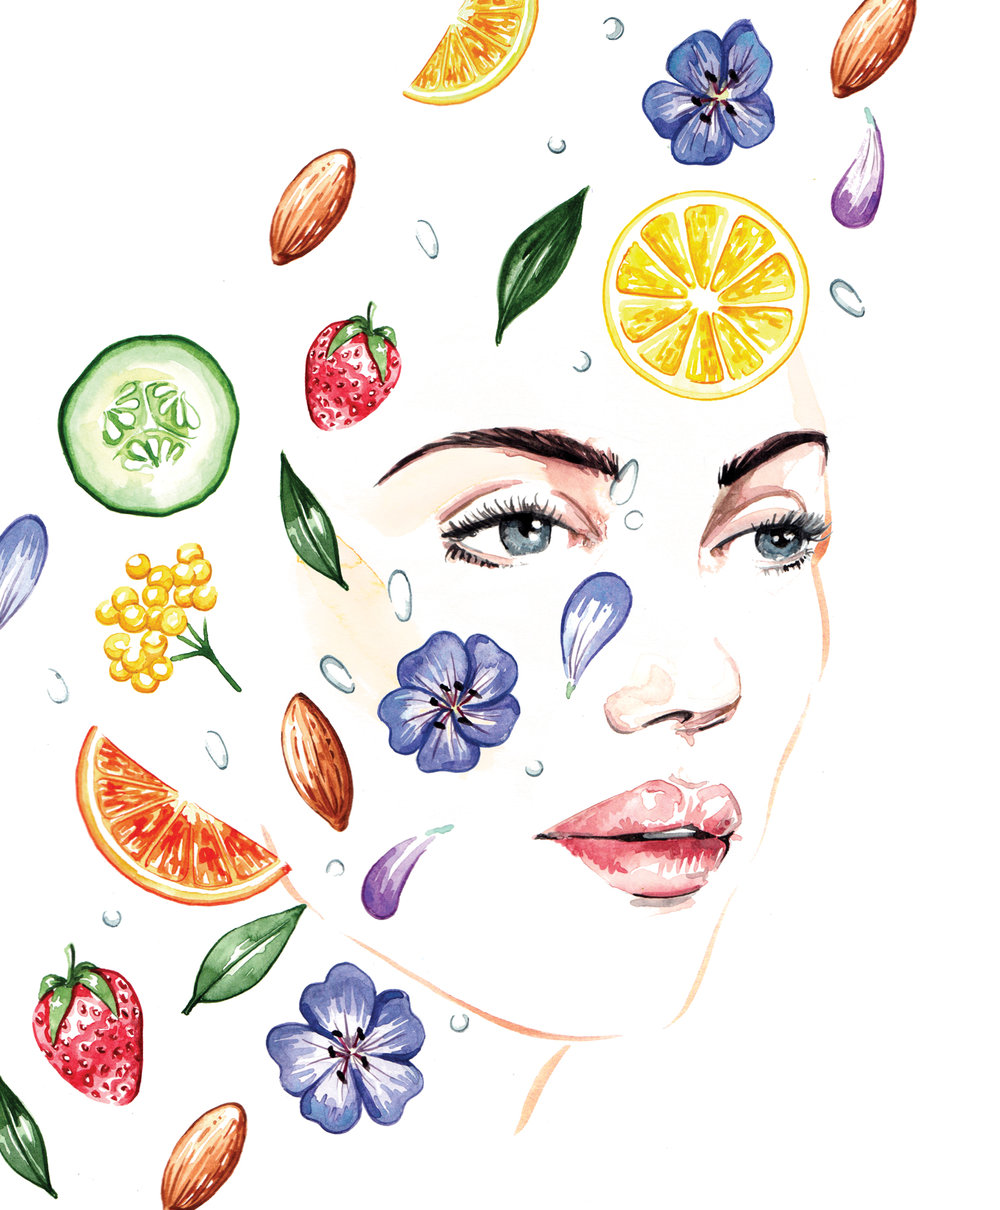 Beauty illustrations watercolour Top Santé magazine